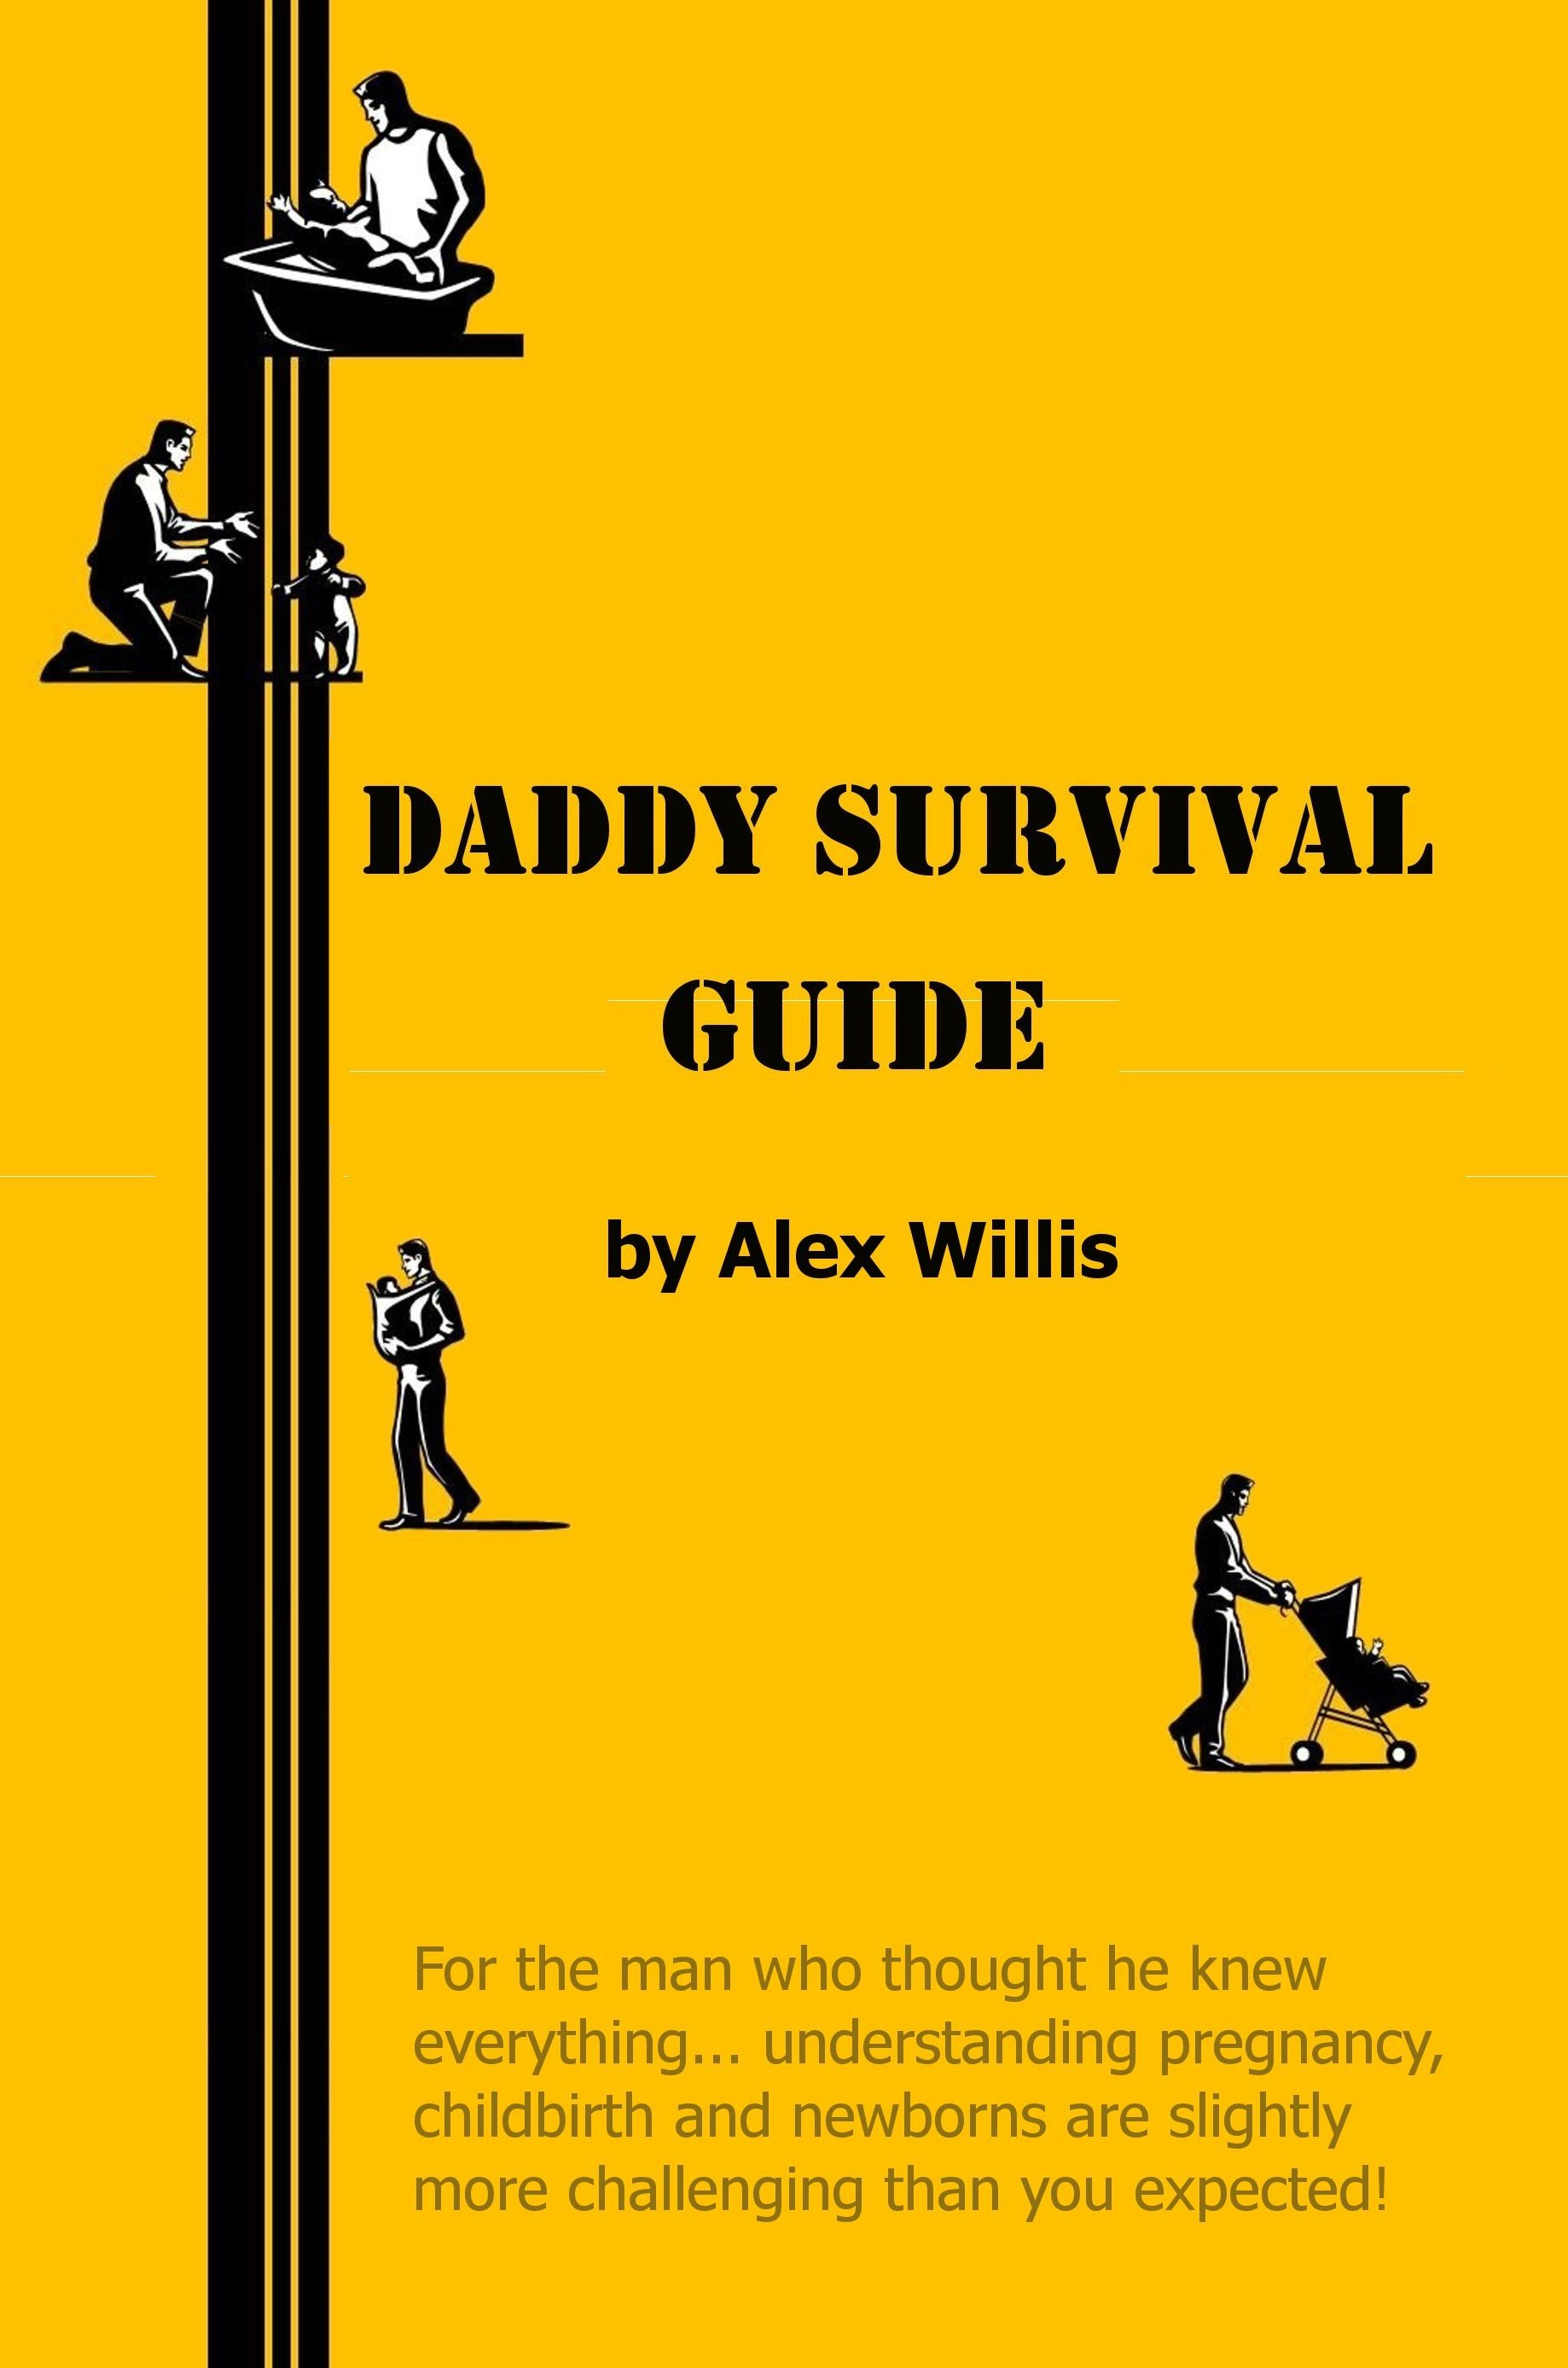 Daddy Survival Guide